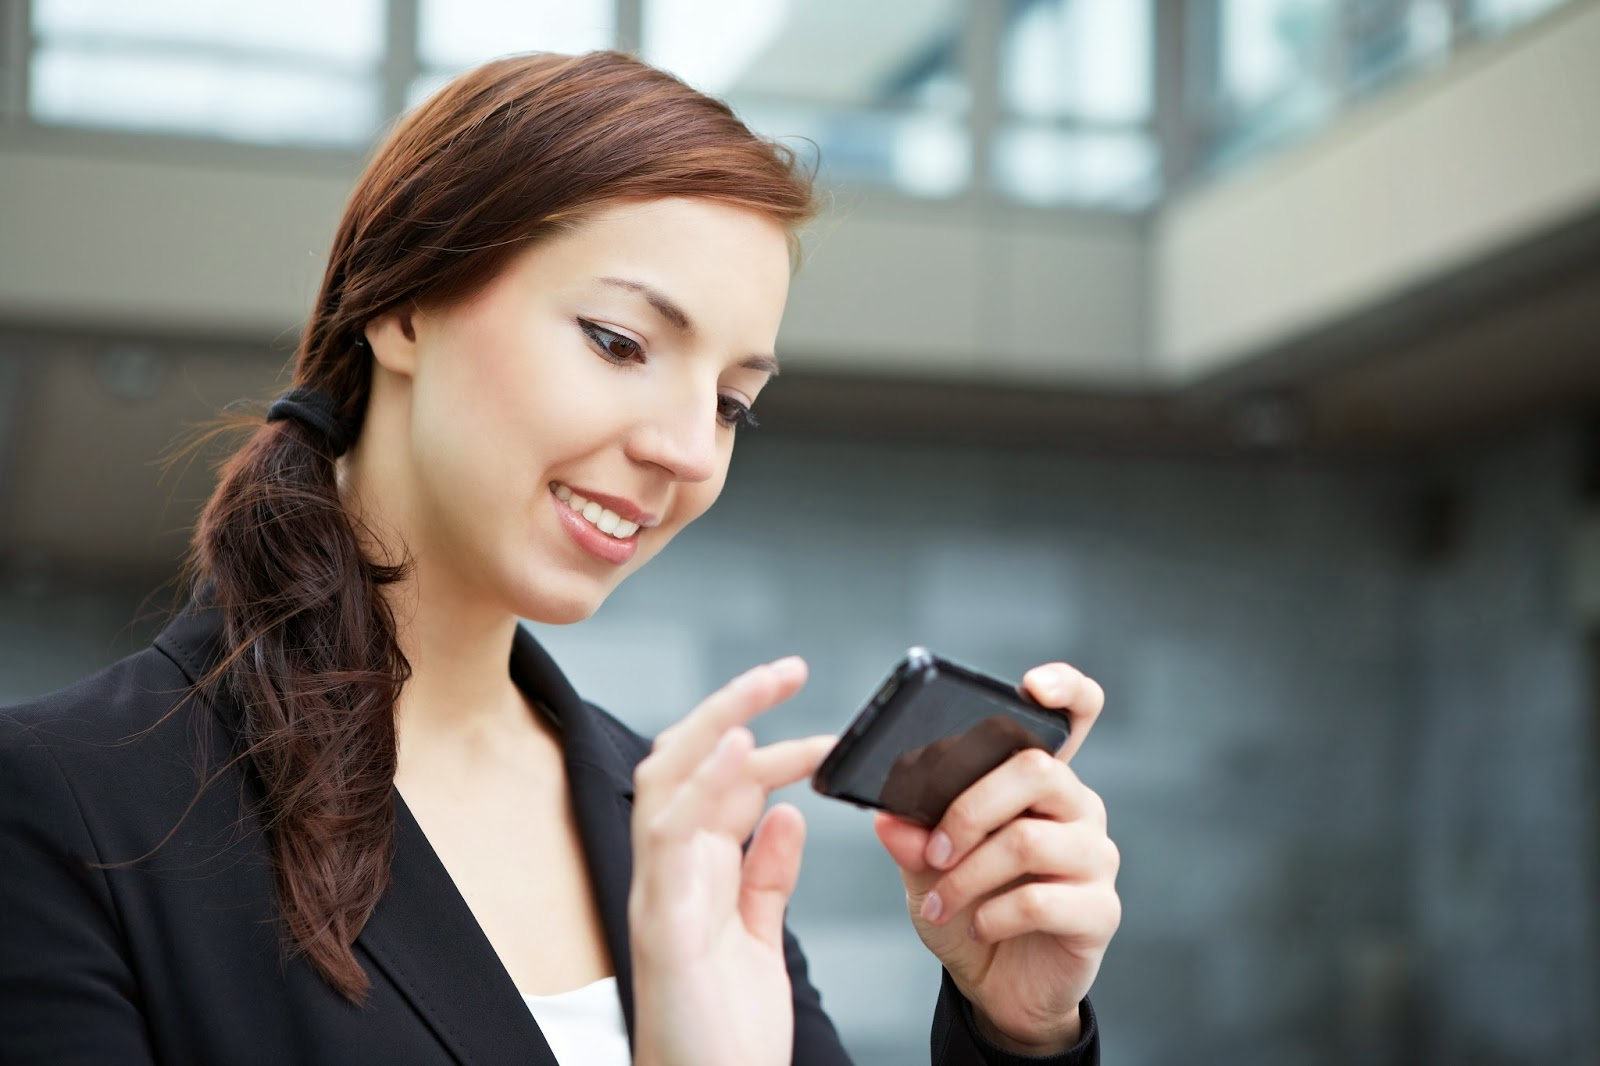 office-woman-on-smartphone